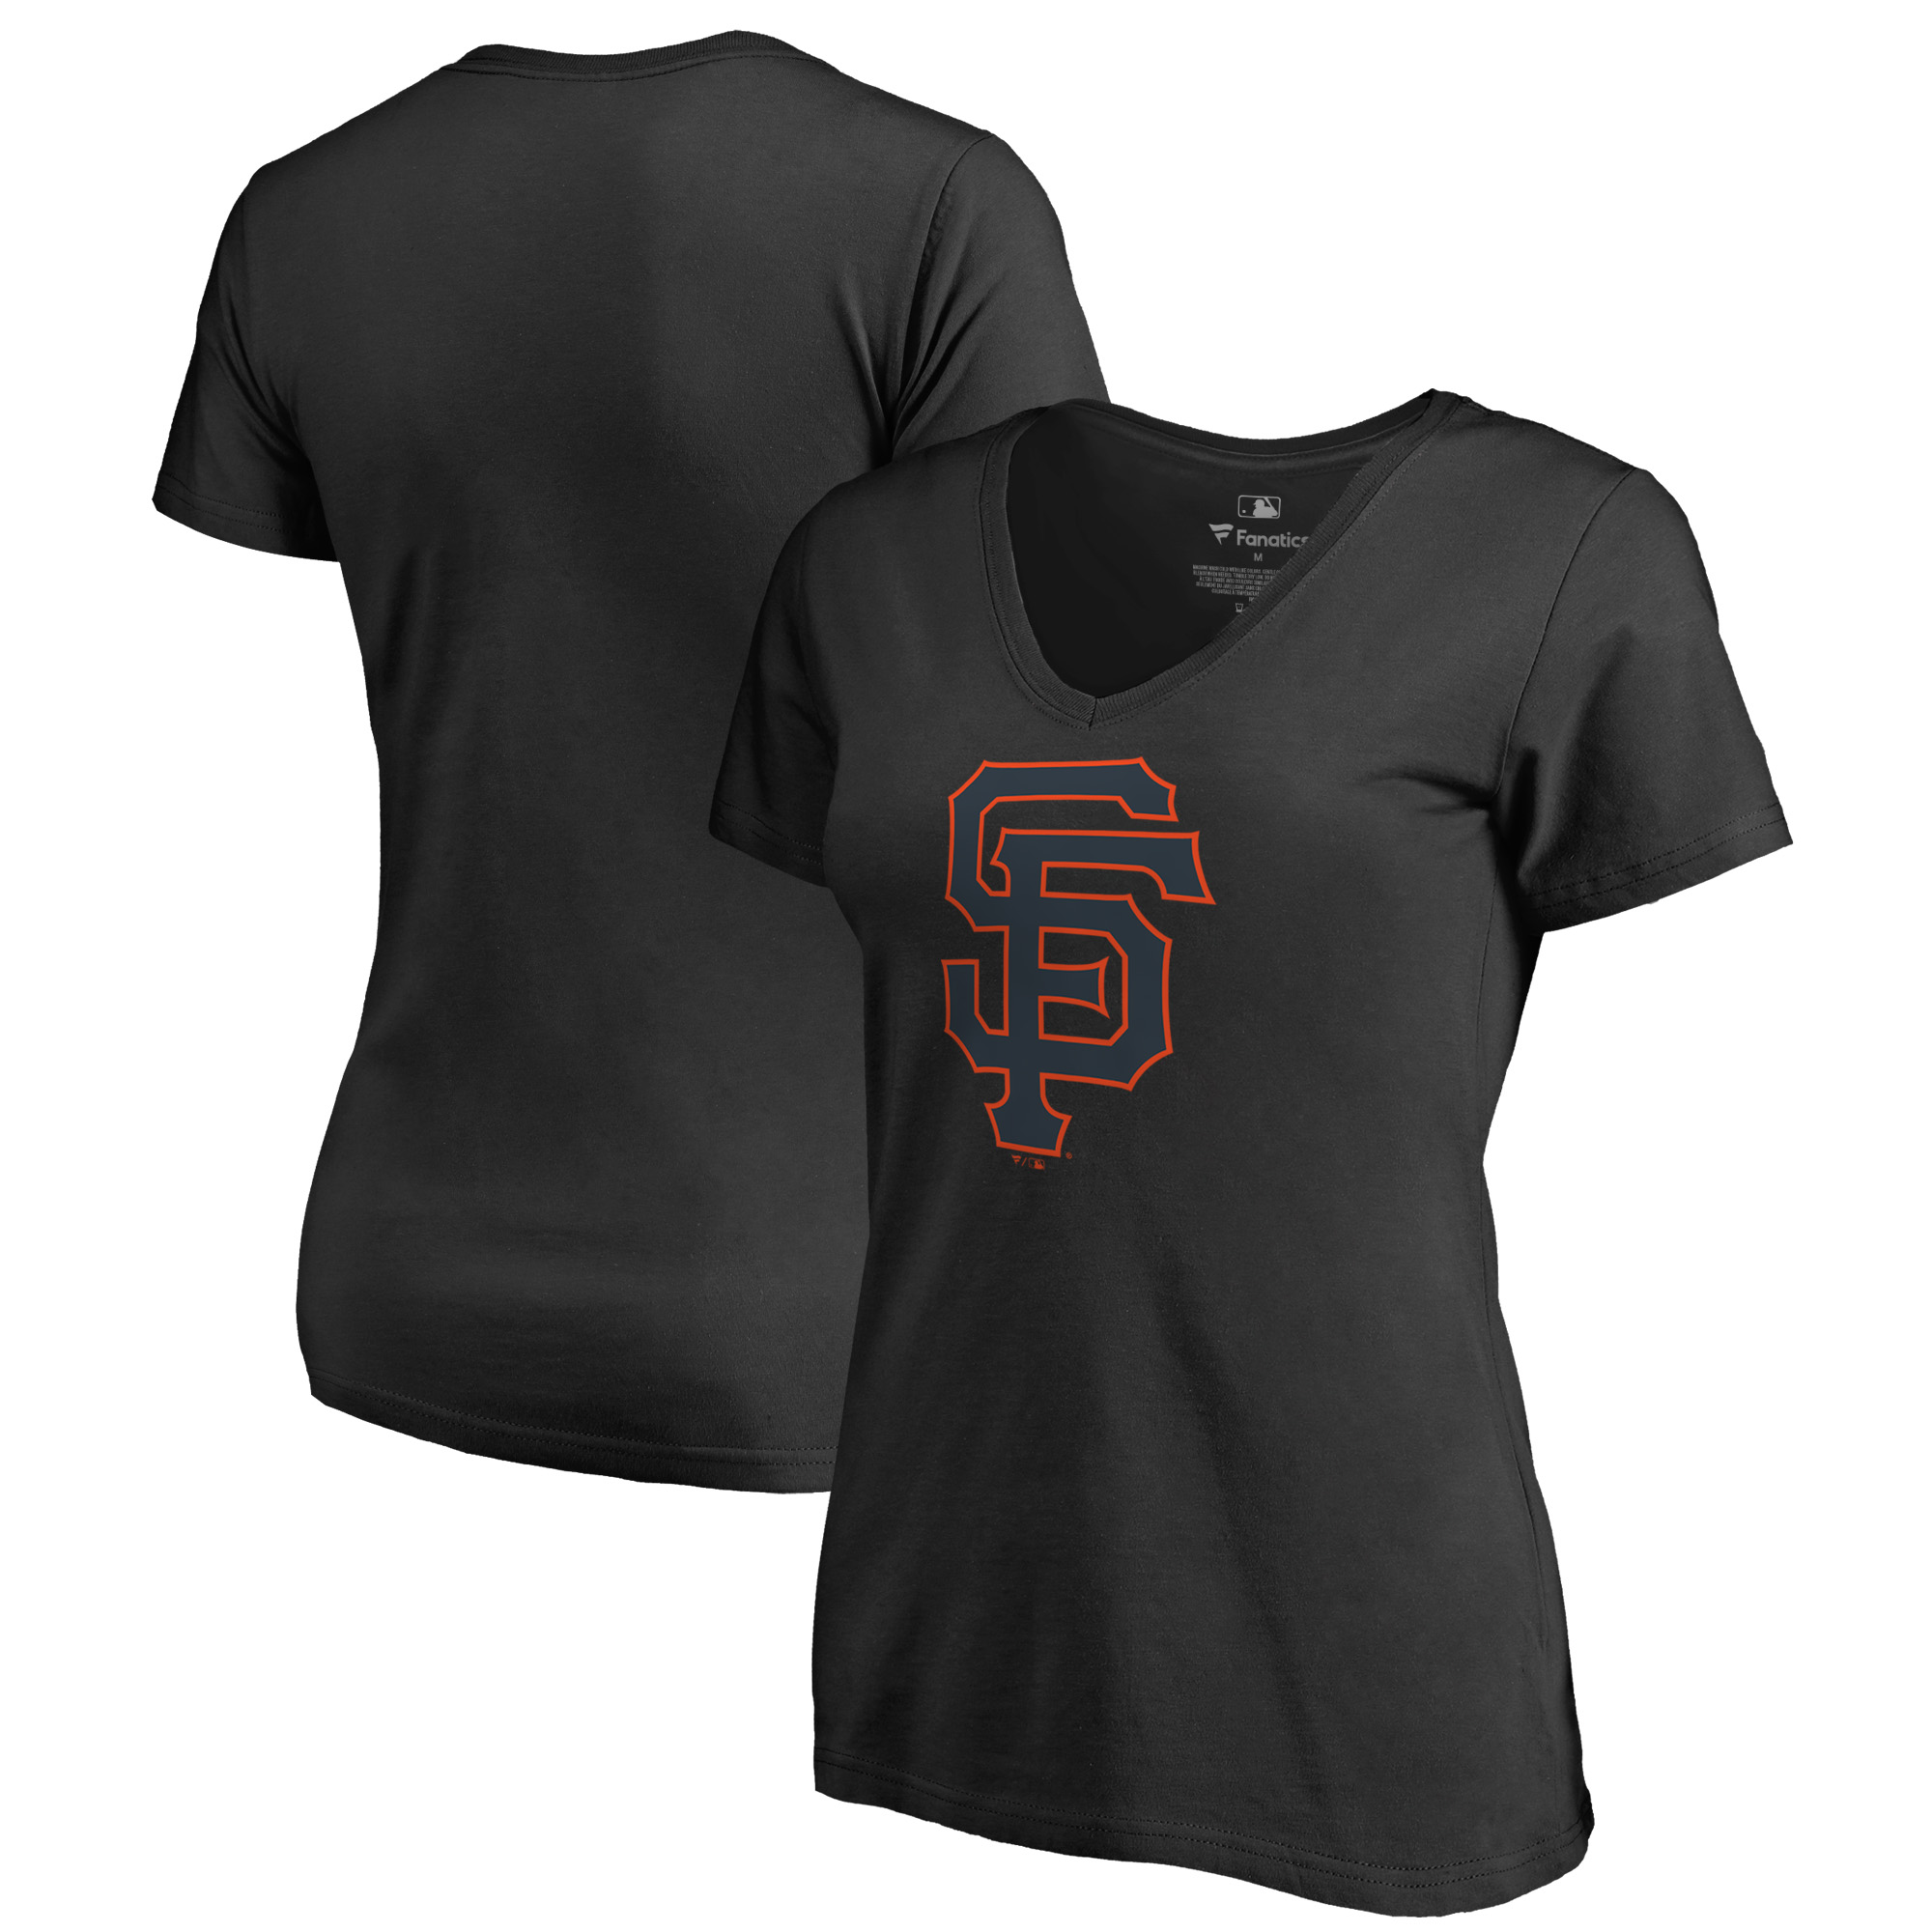 San Francisco Giants Fanatics Branded Women's Taylor Plus Size V-Neck T-Shirt - Black